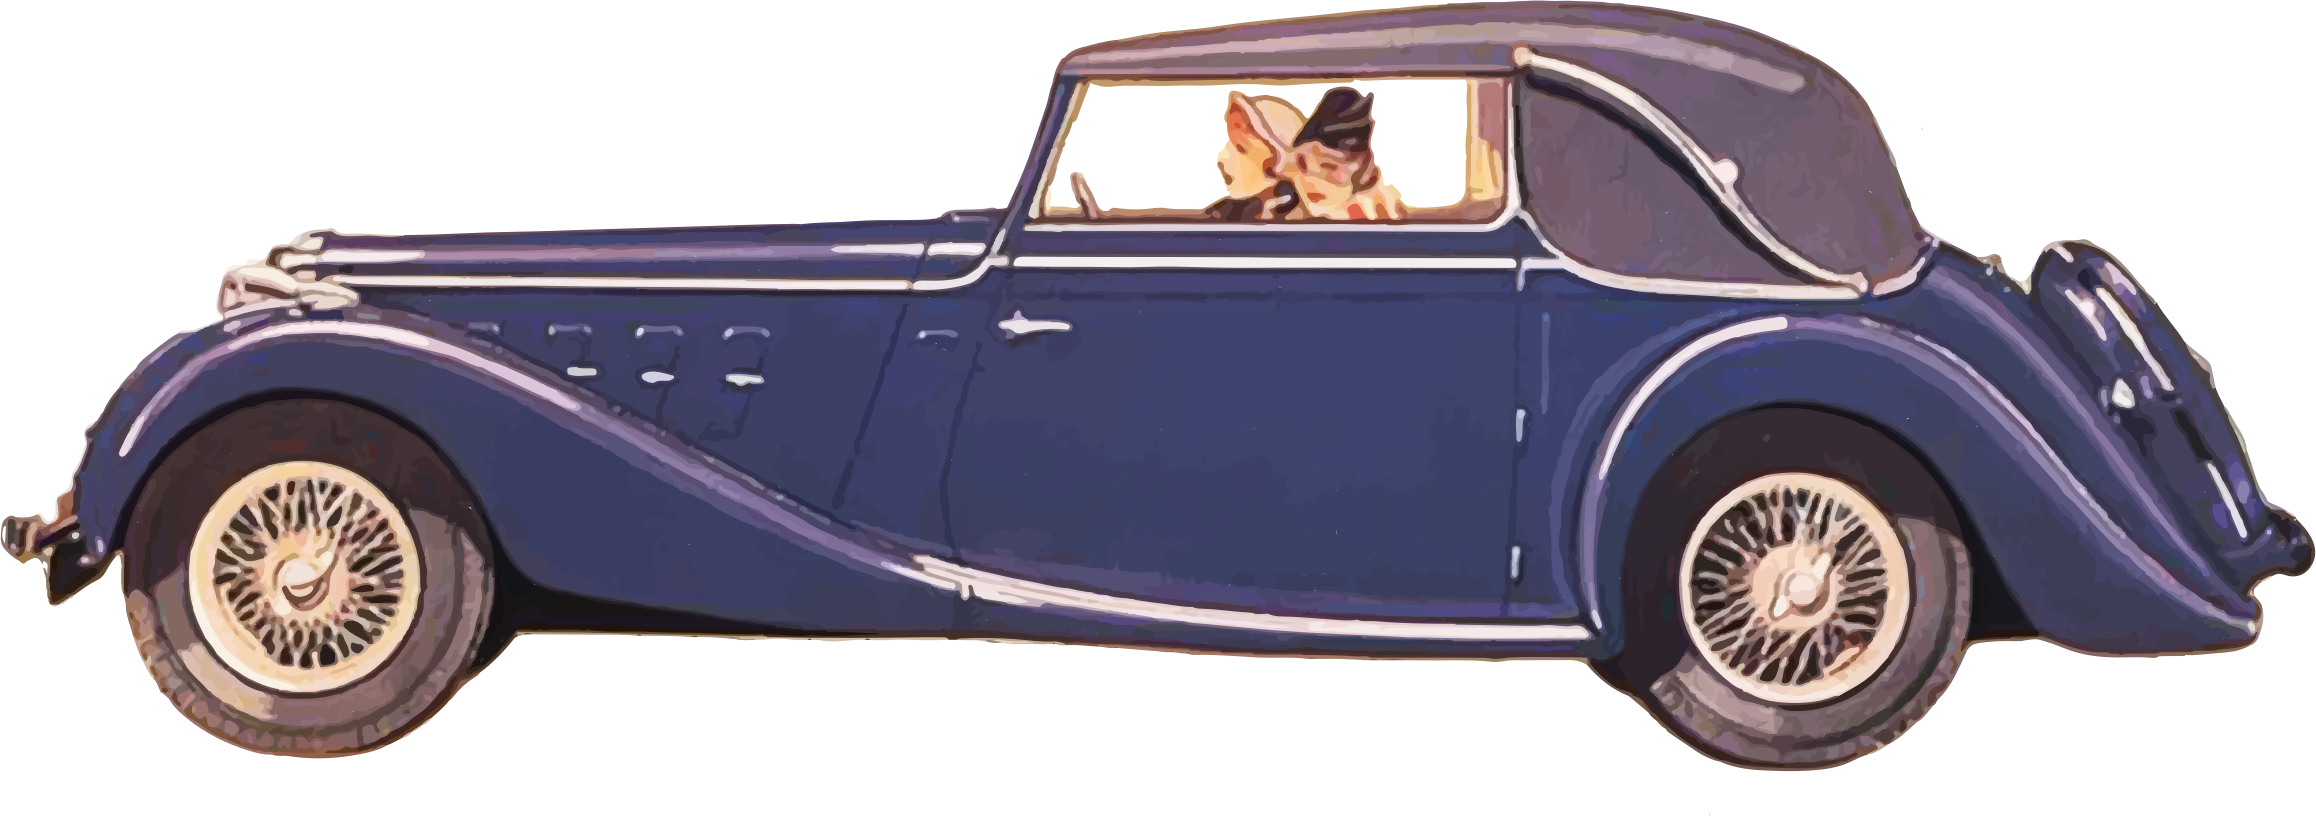 Woman driving car clipart clipart freeuse stock Clipart - Ladies Driving Vintage Car clipart freeuse stock